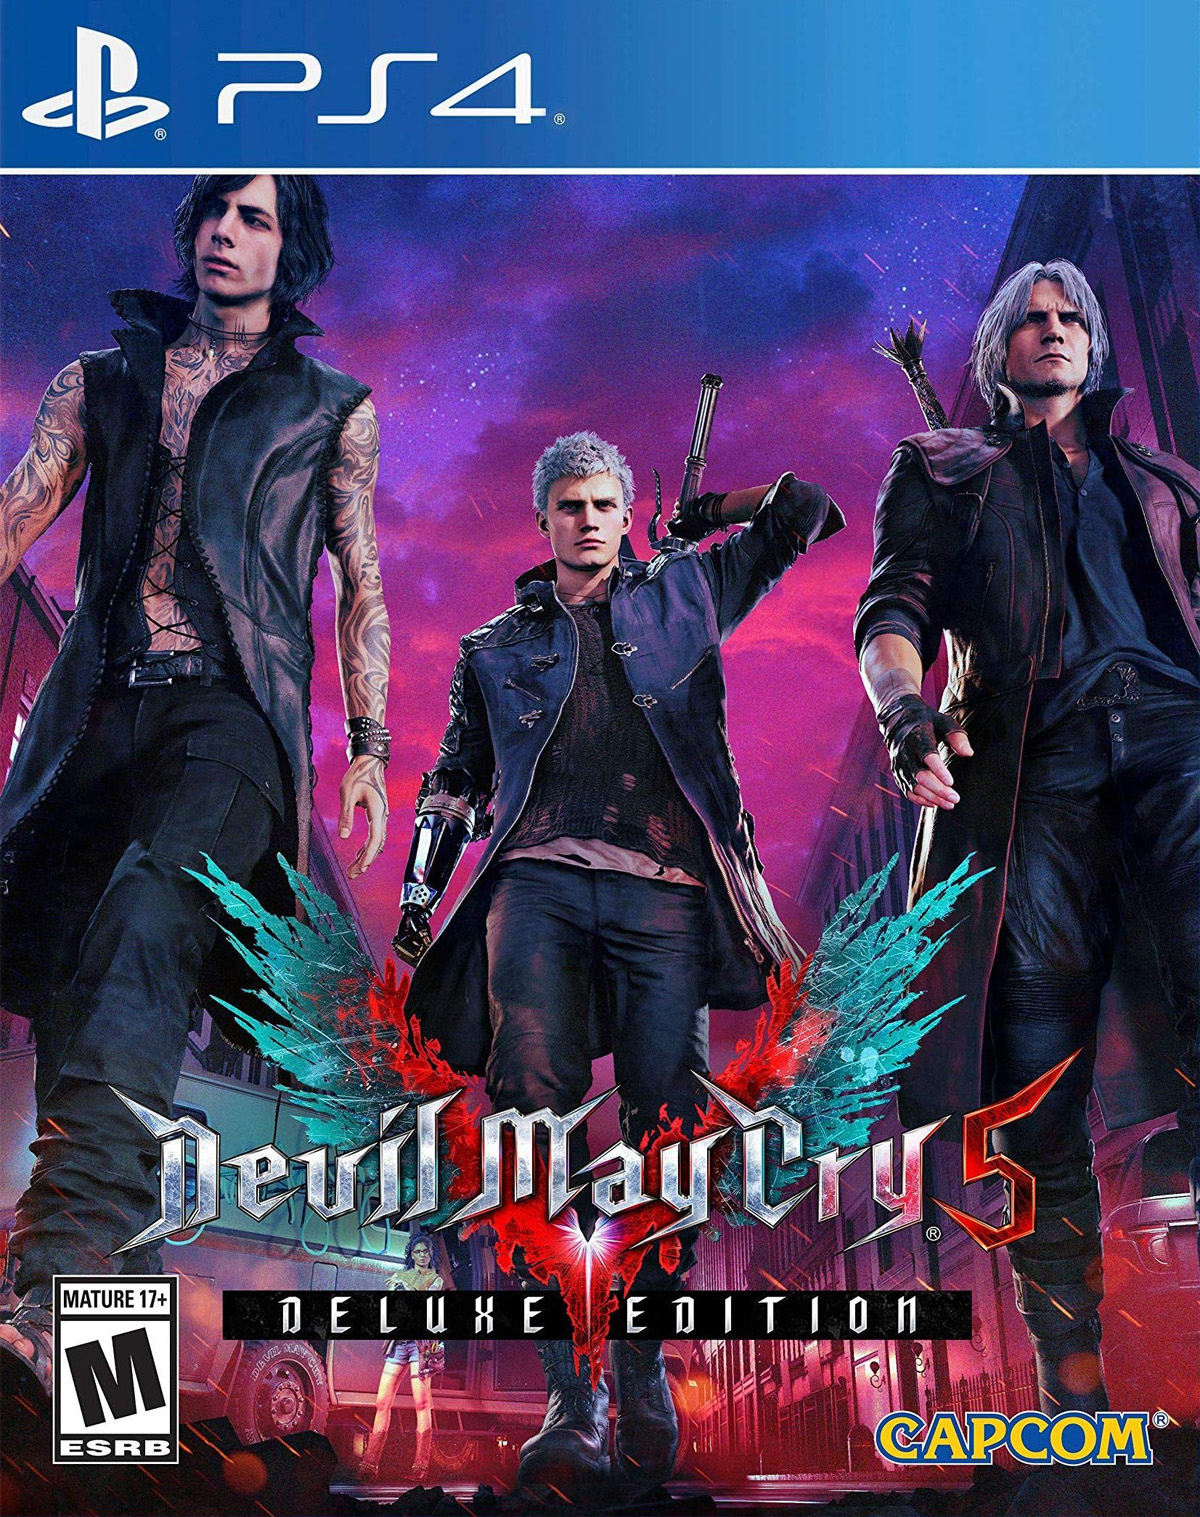 Devil May Cry 5 - Deluxe Edition [PS4] 6.72 / 7.02 / 7.55 [EUR] (2019) [Русский] (v1.08)